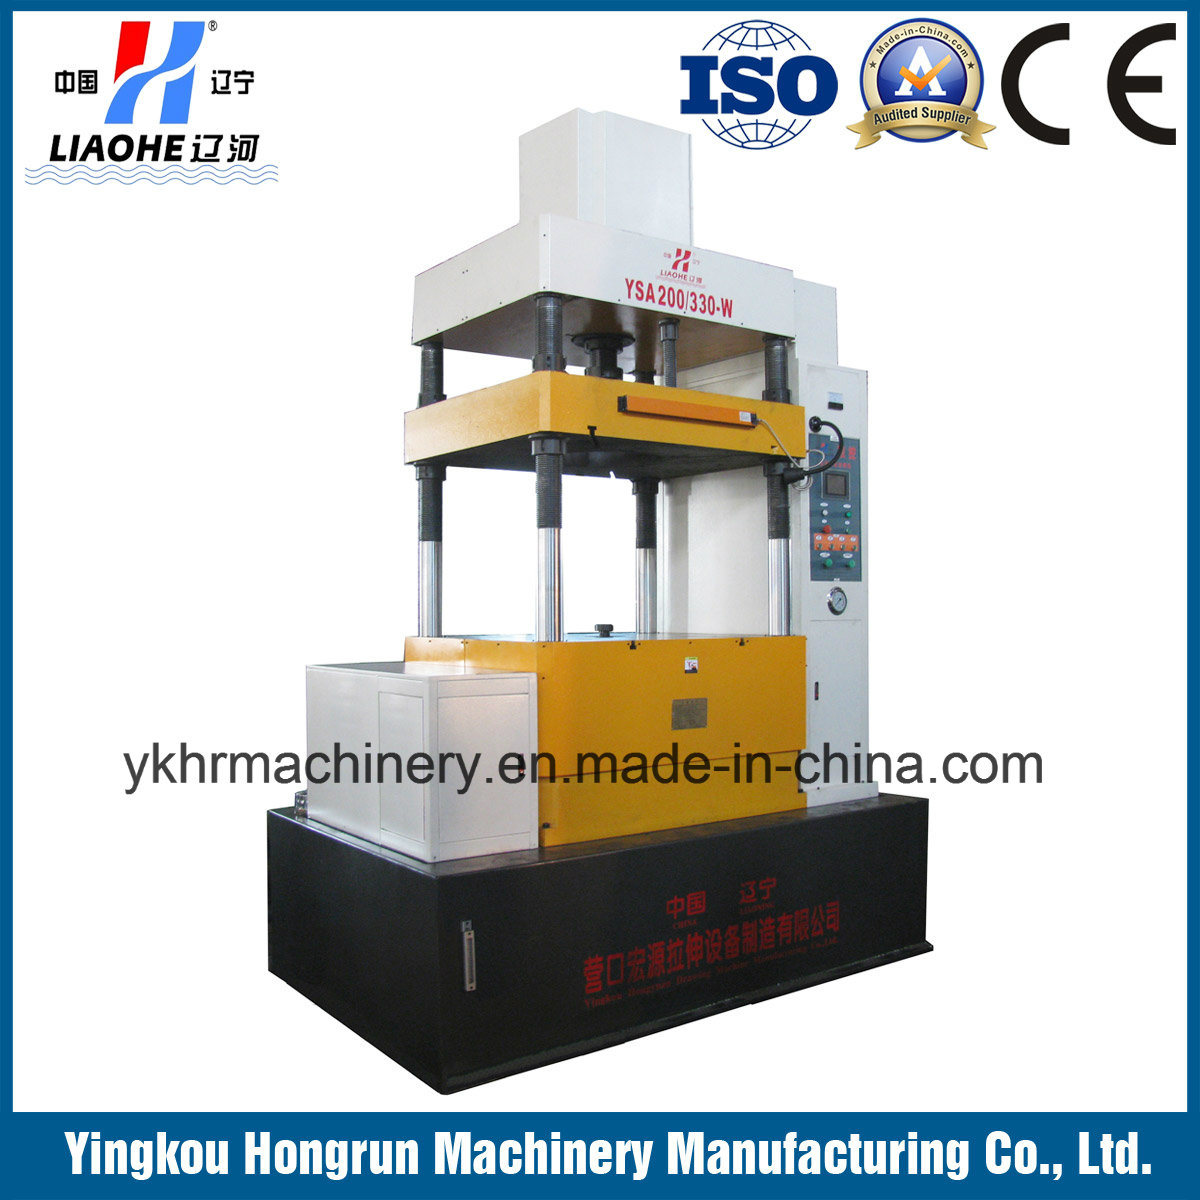 CNC Hydraulic Double-Action Deep Drawing Press